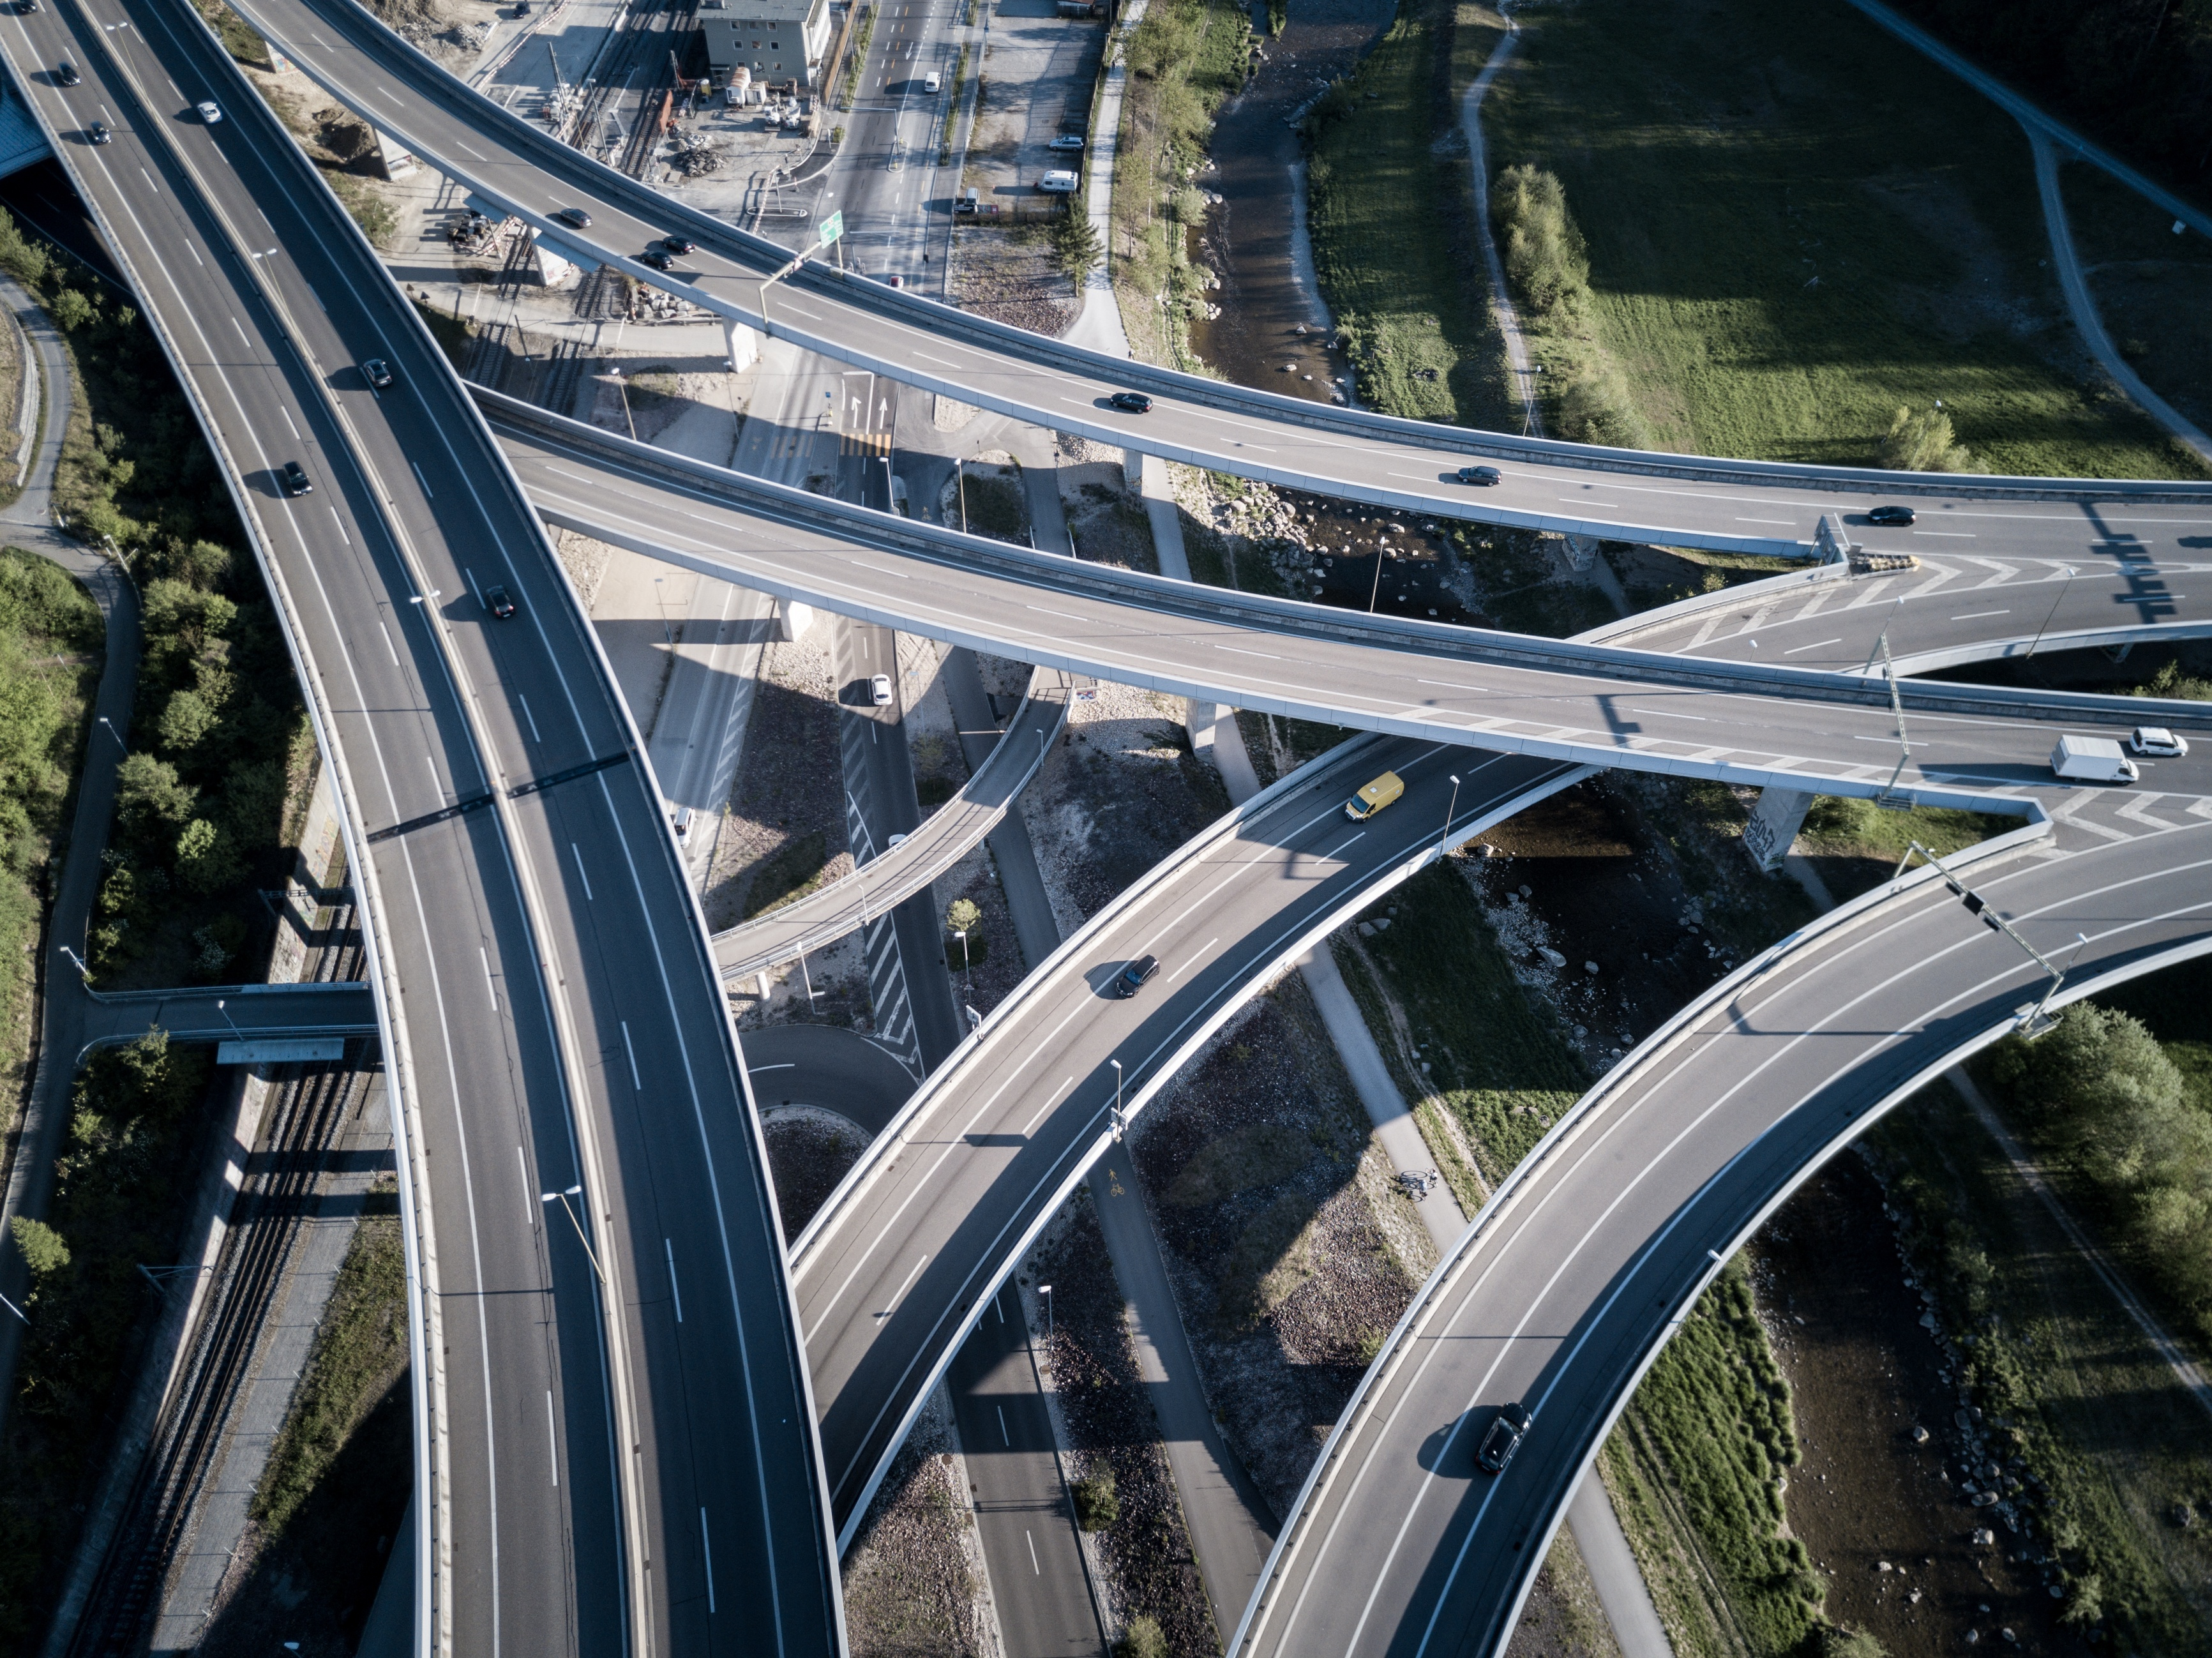 Ariel View of the Highway